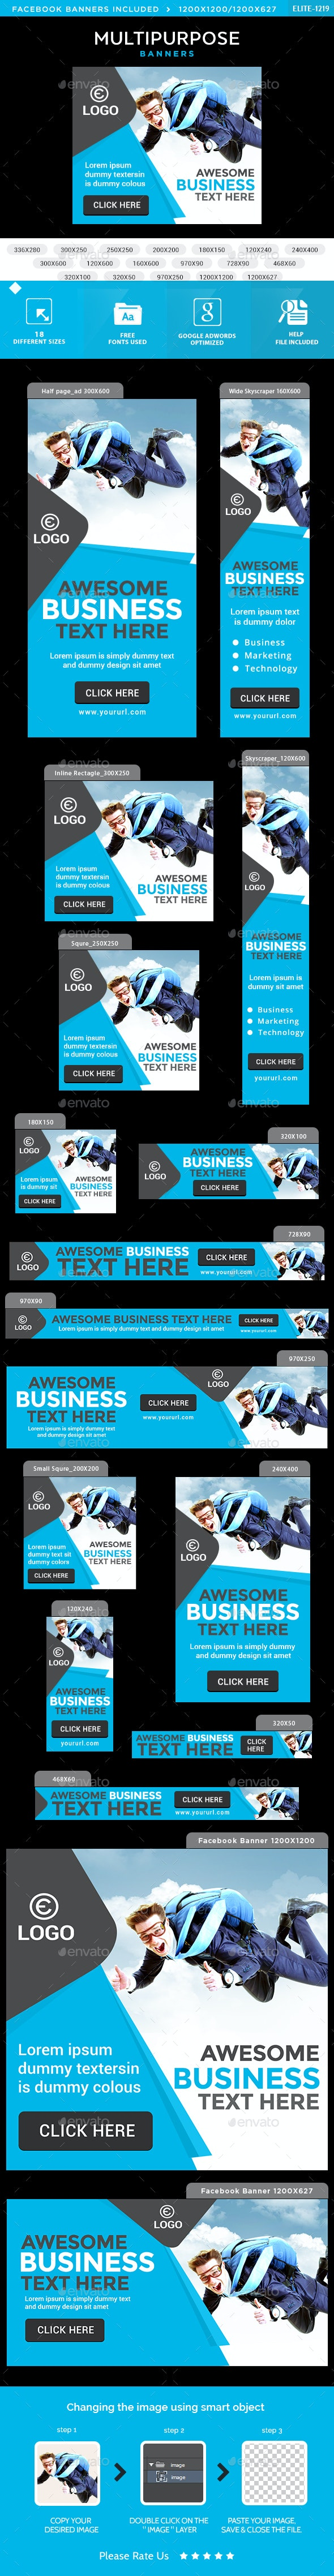 Multipurpose Banners - Banners & Ads Web Elements